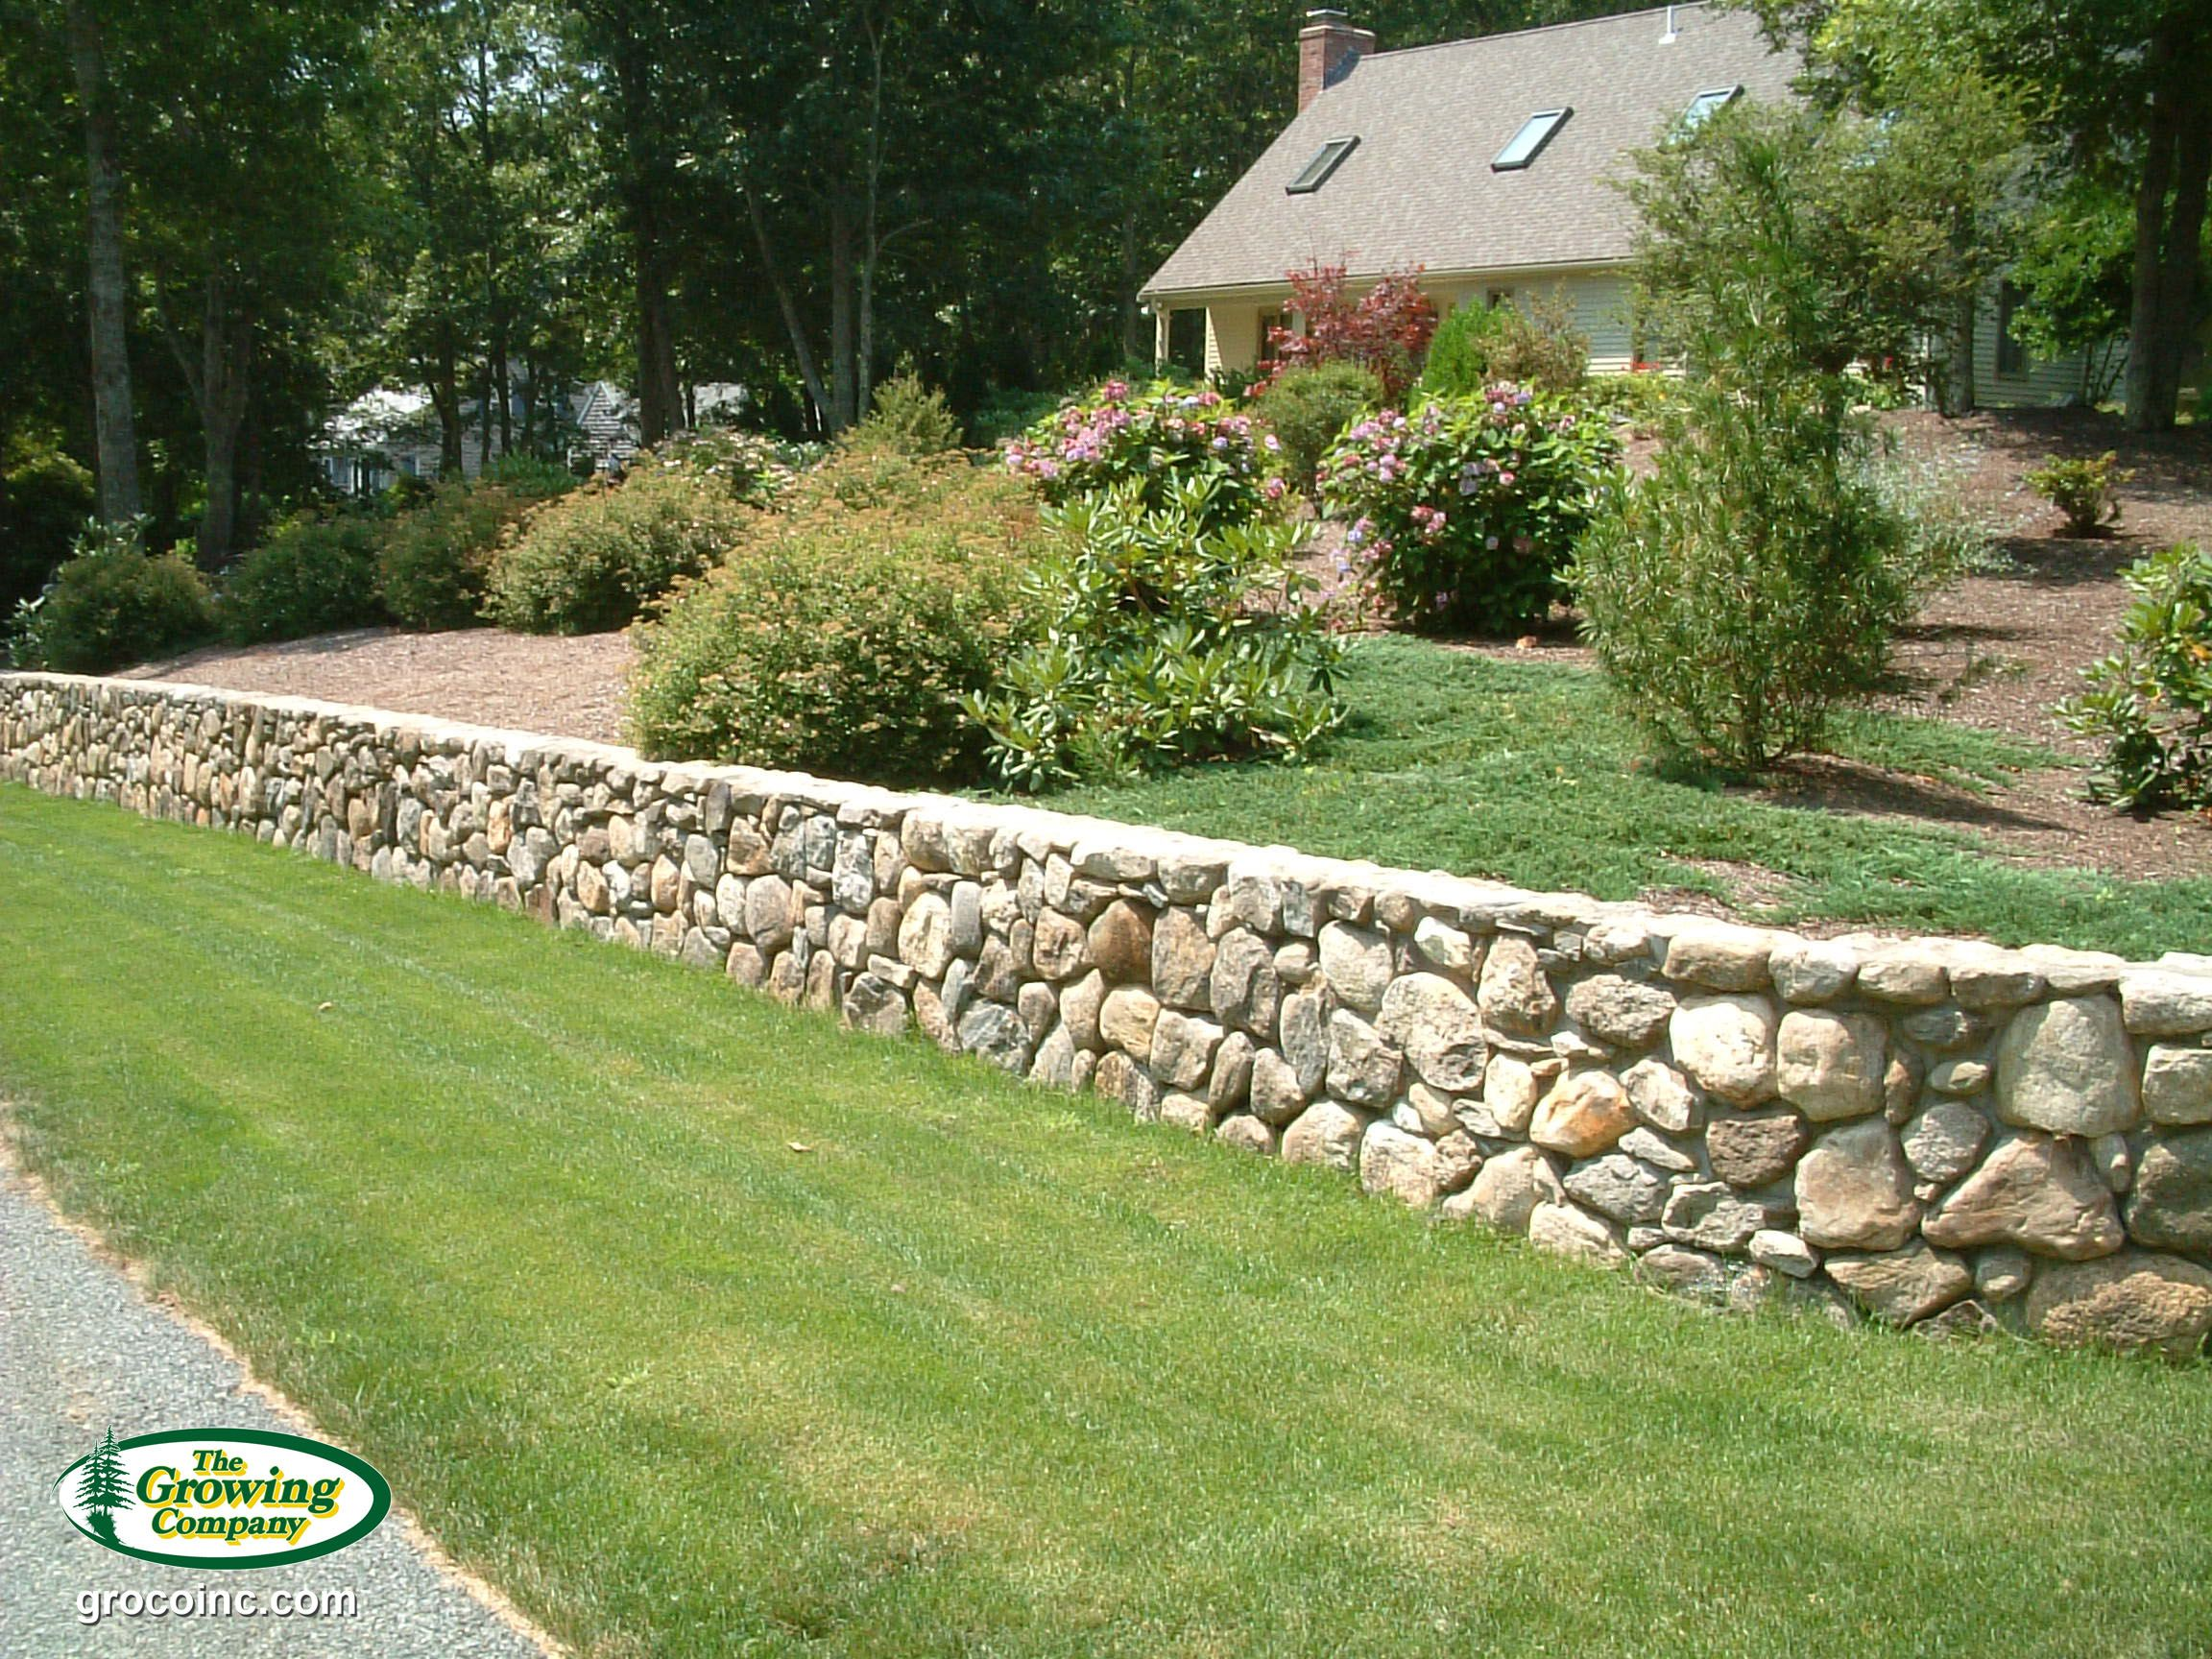 A Natural Stone Retaining Wall Is Both Functional And Decorative